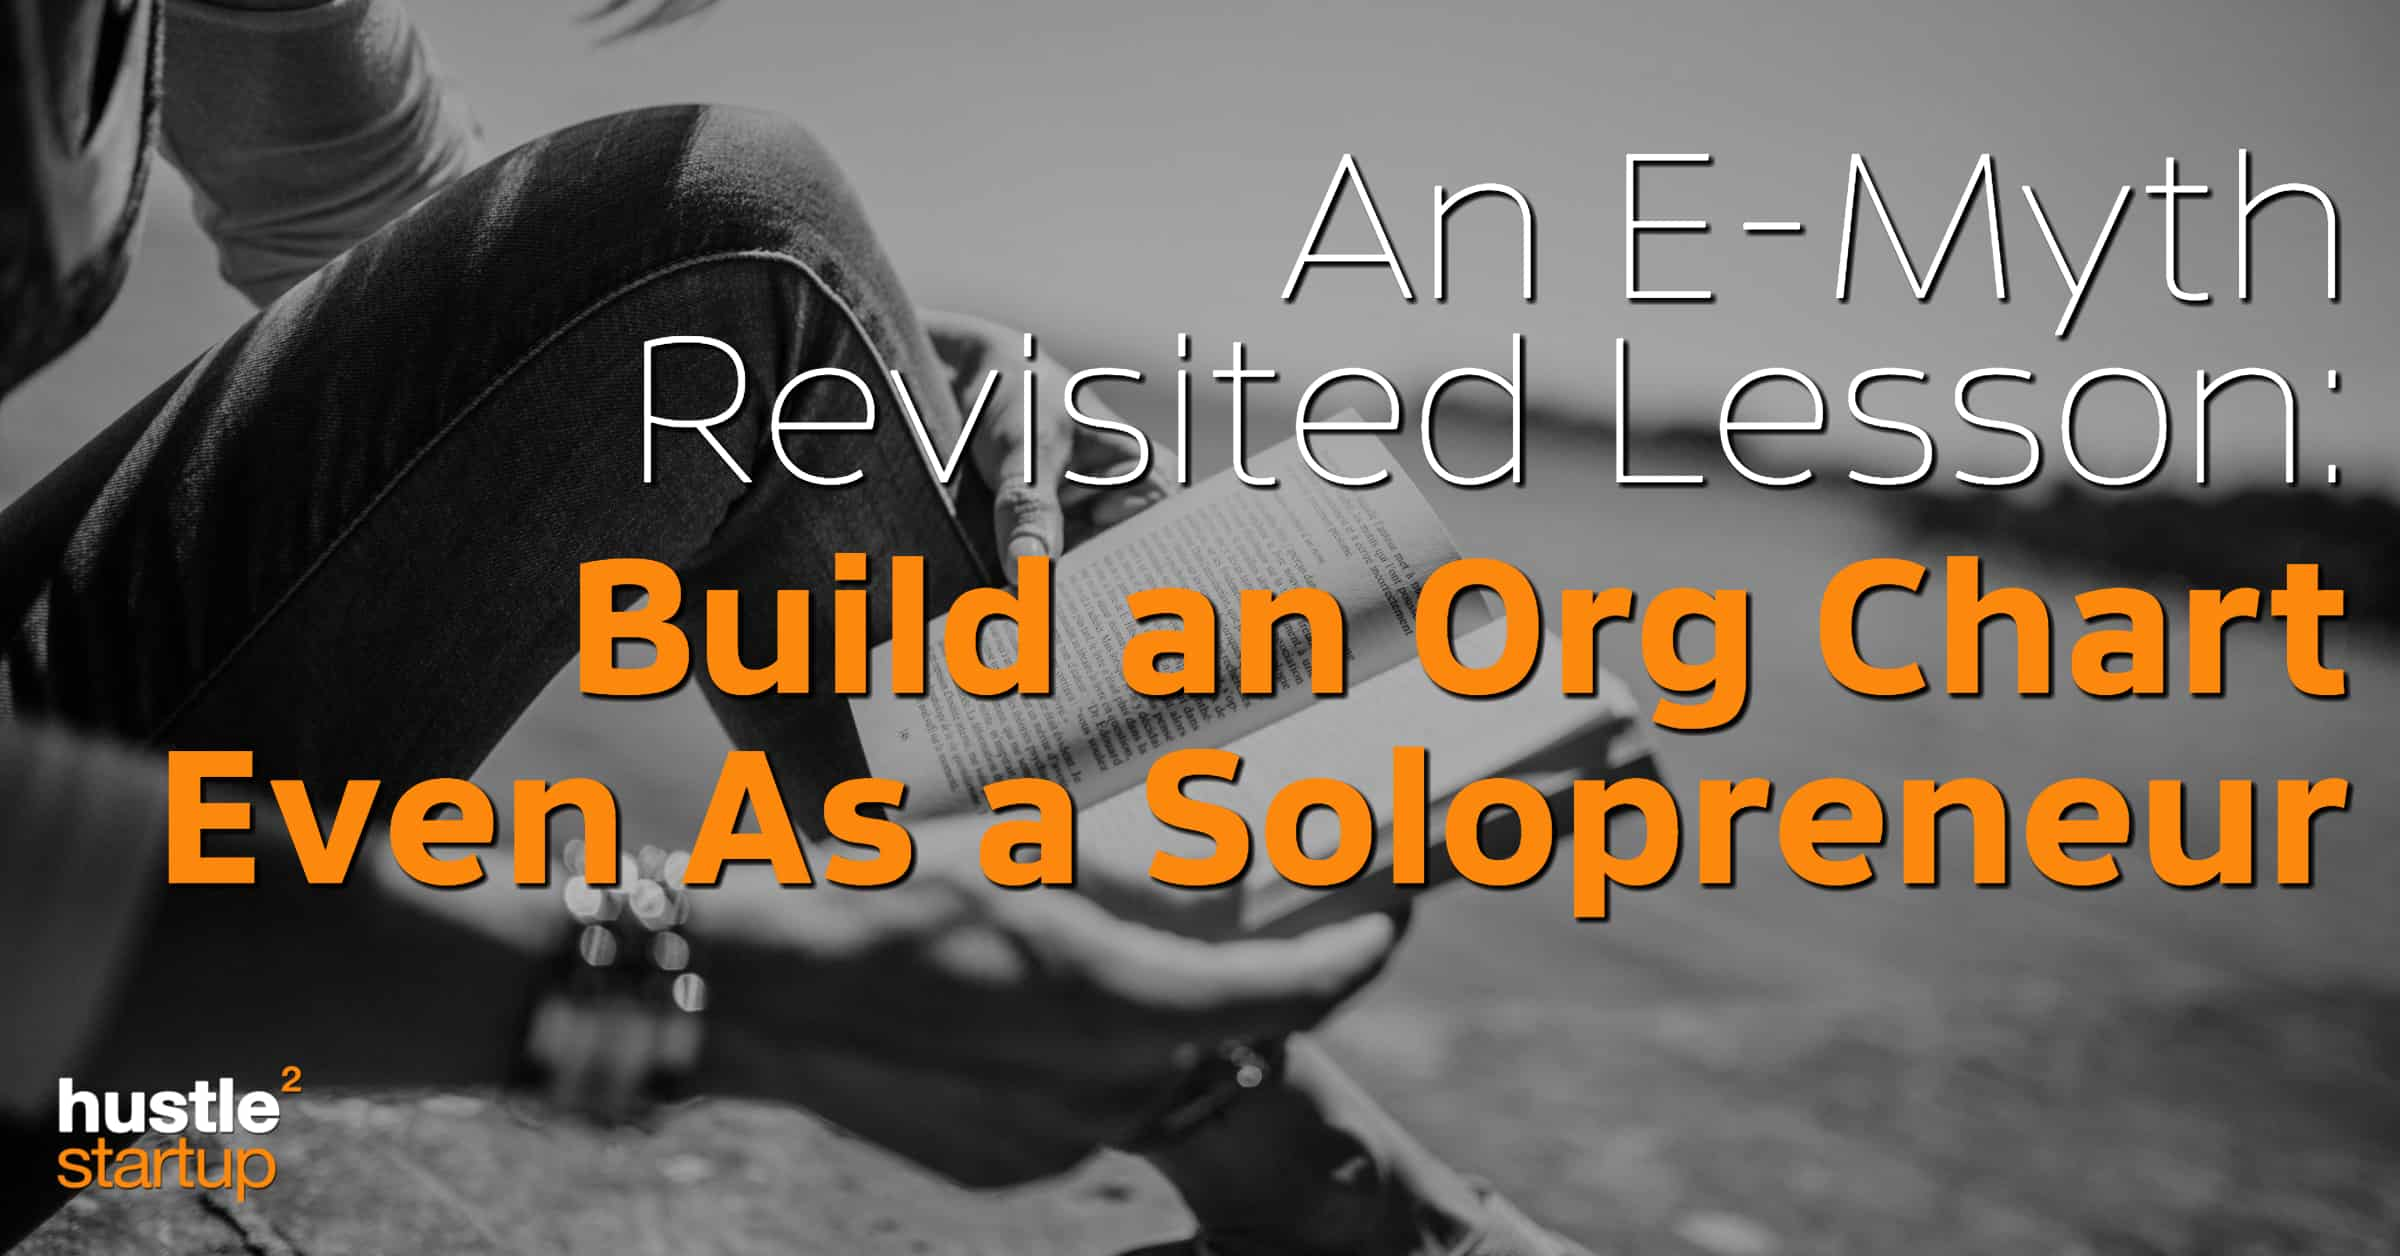 E Myth Lessons Build An Org Chart Even As A Solopreneur